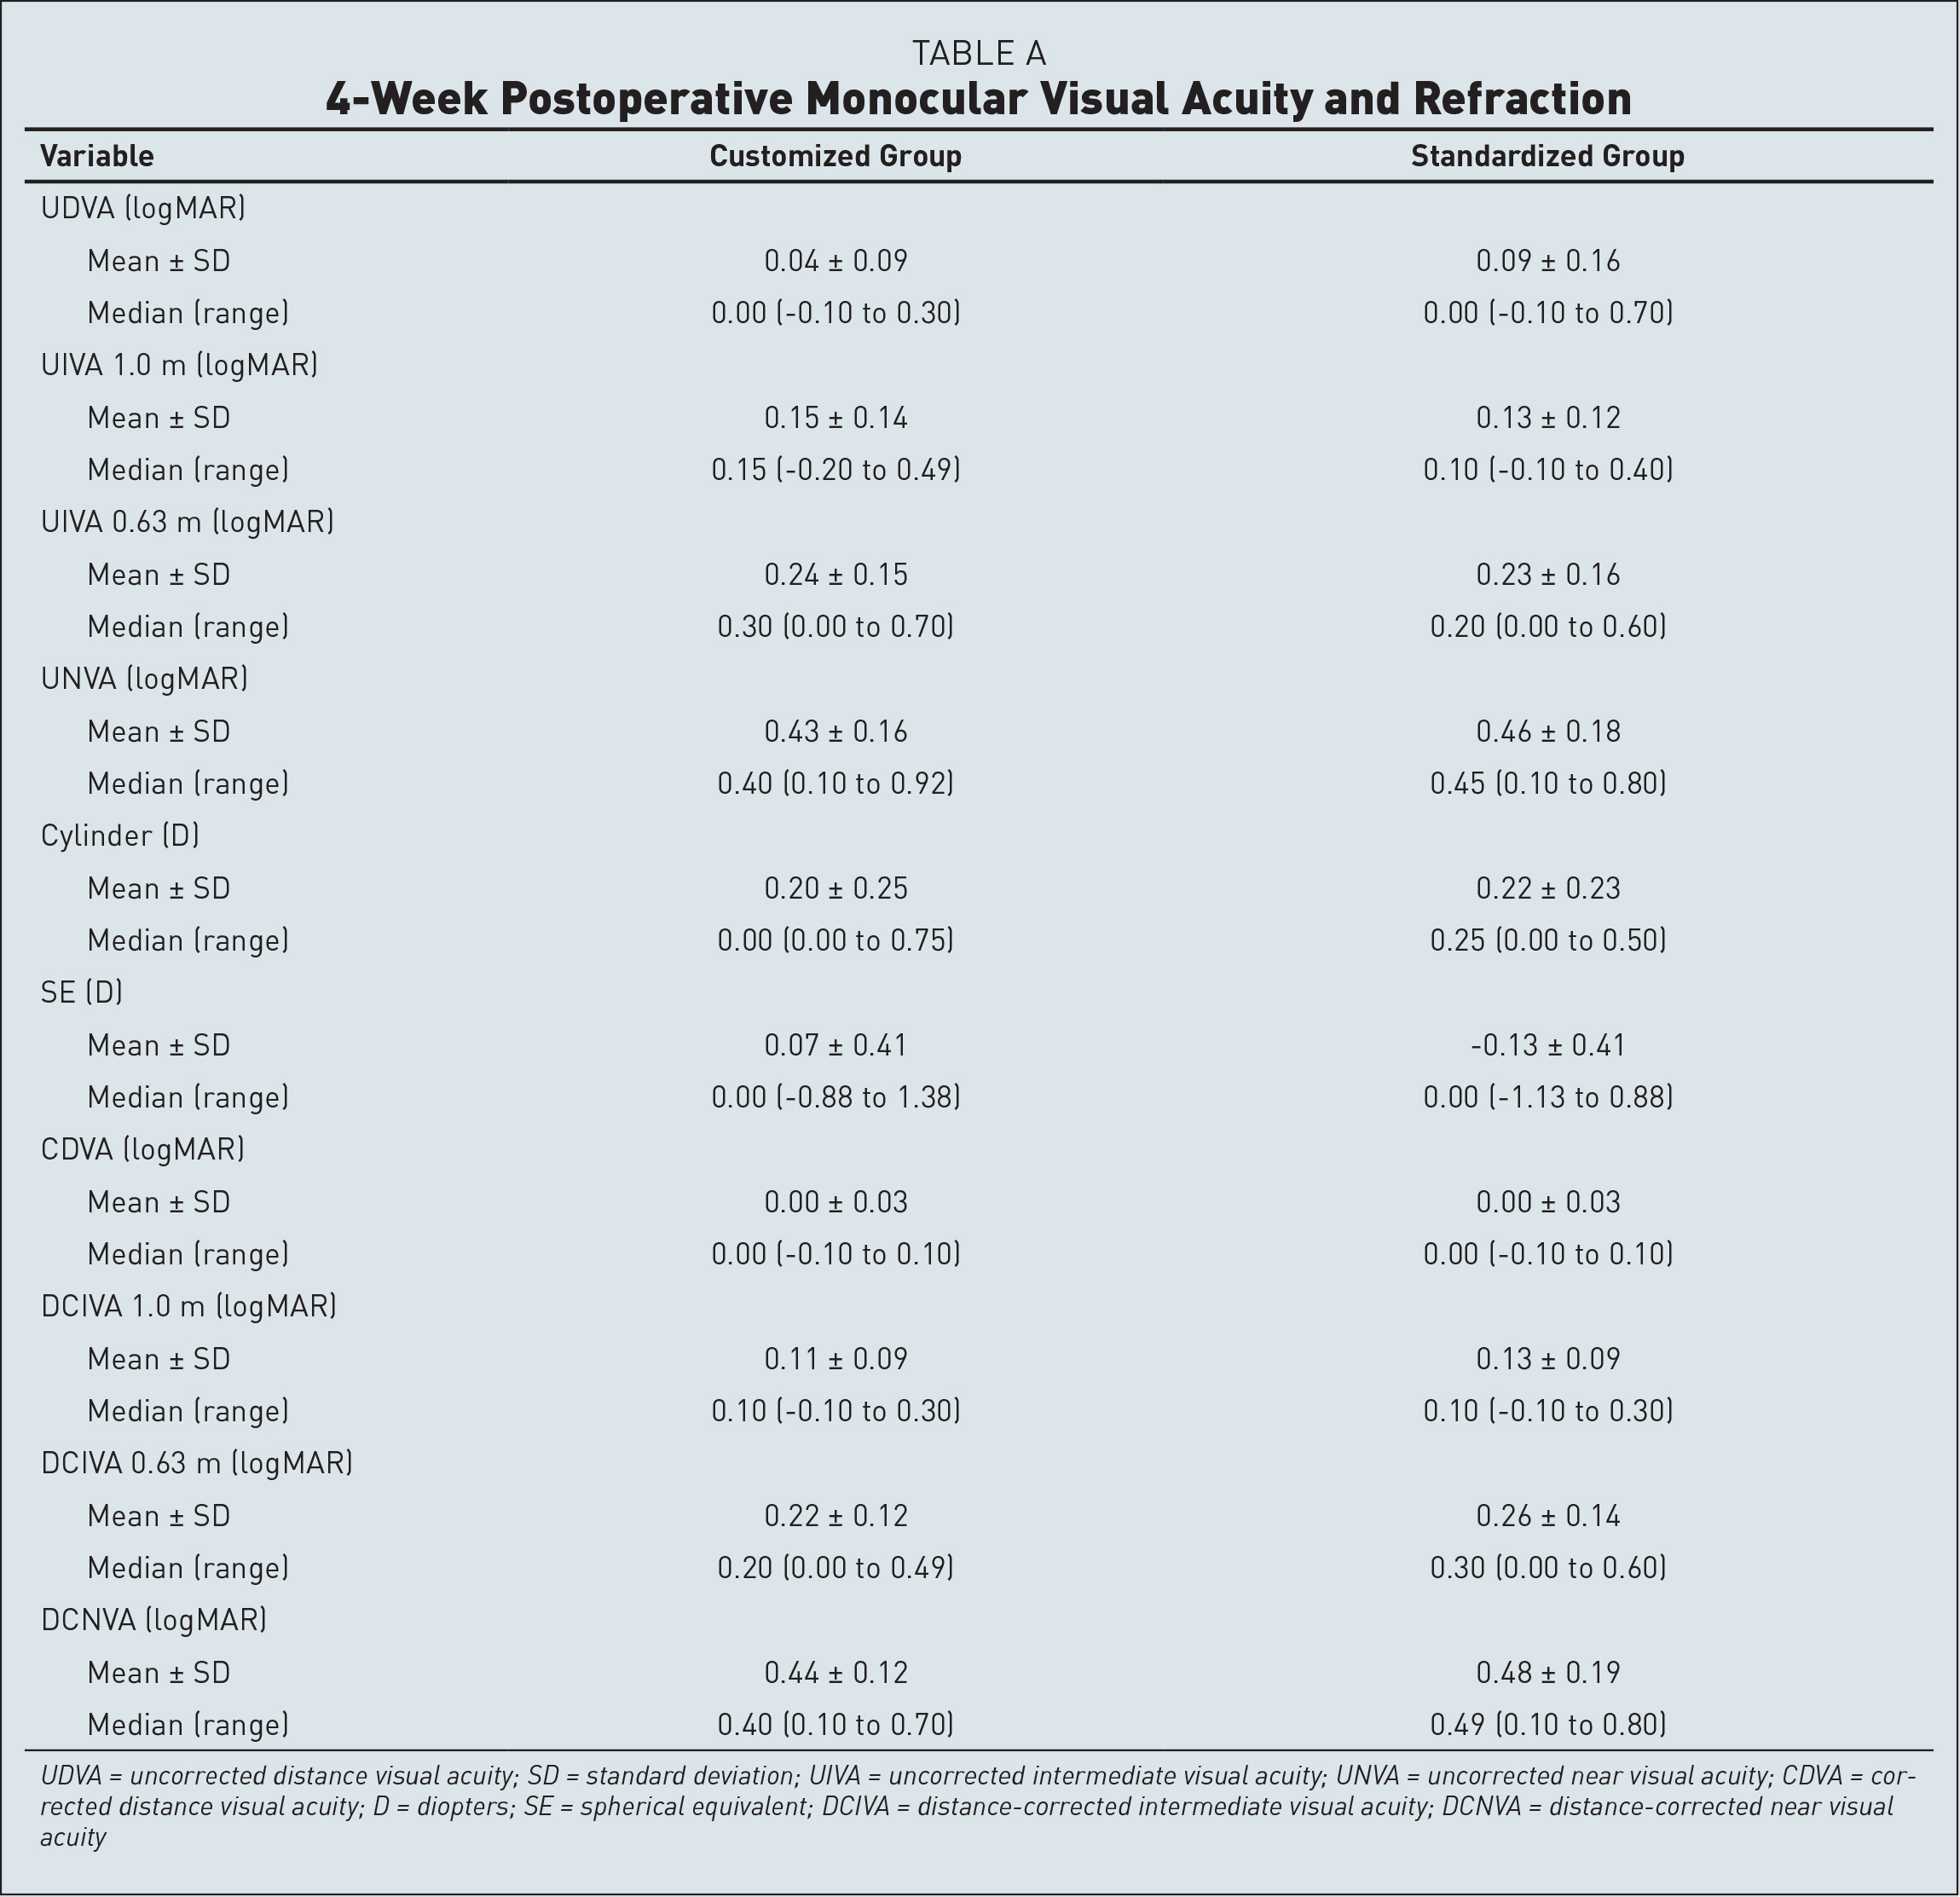 4-Week Postoperative Monocular Visual Acuity and Refraction